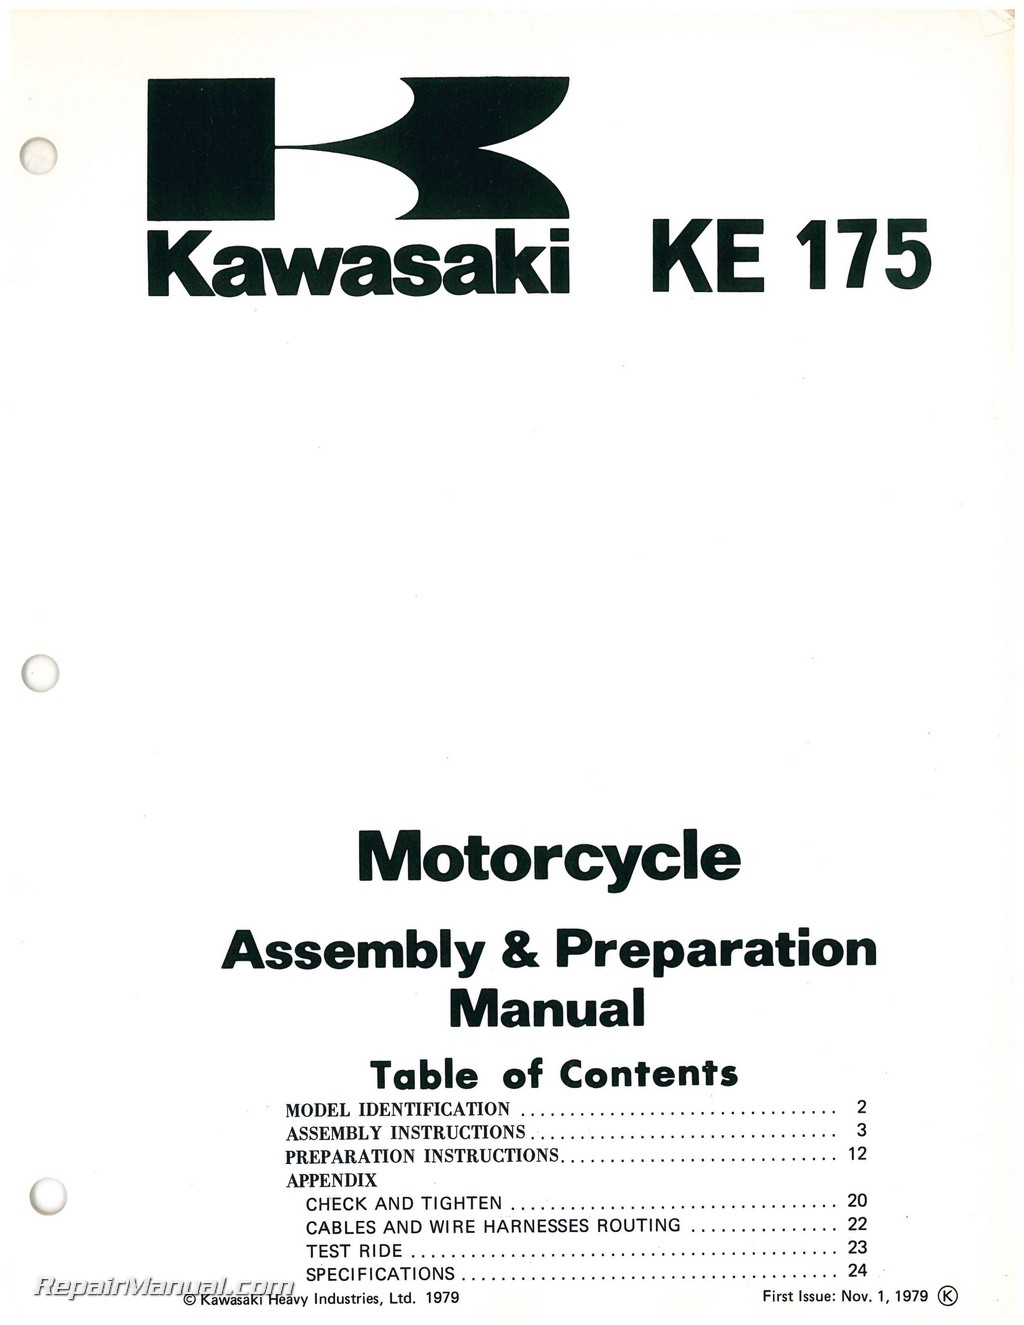 Used 1980 Kawasaki KE175 D2 Motorcycle Assembly